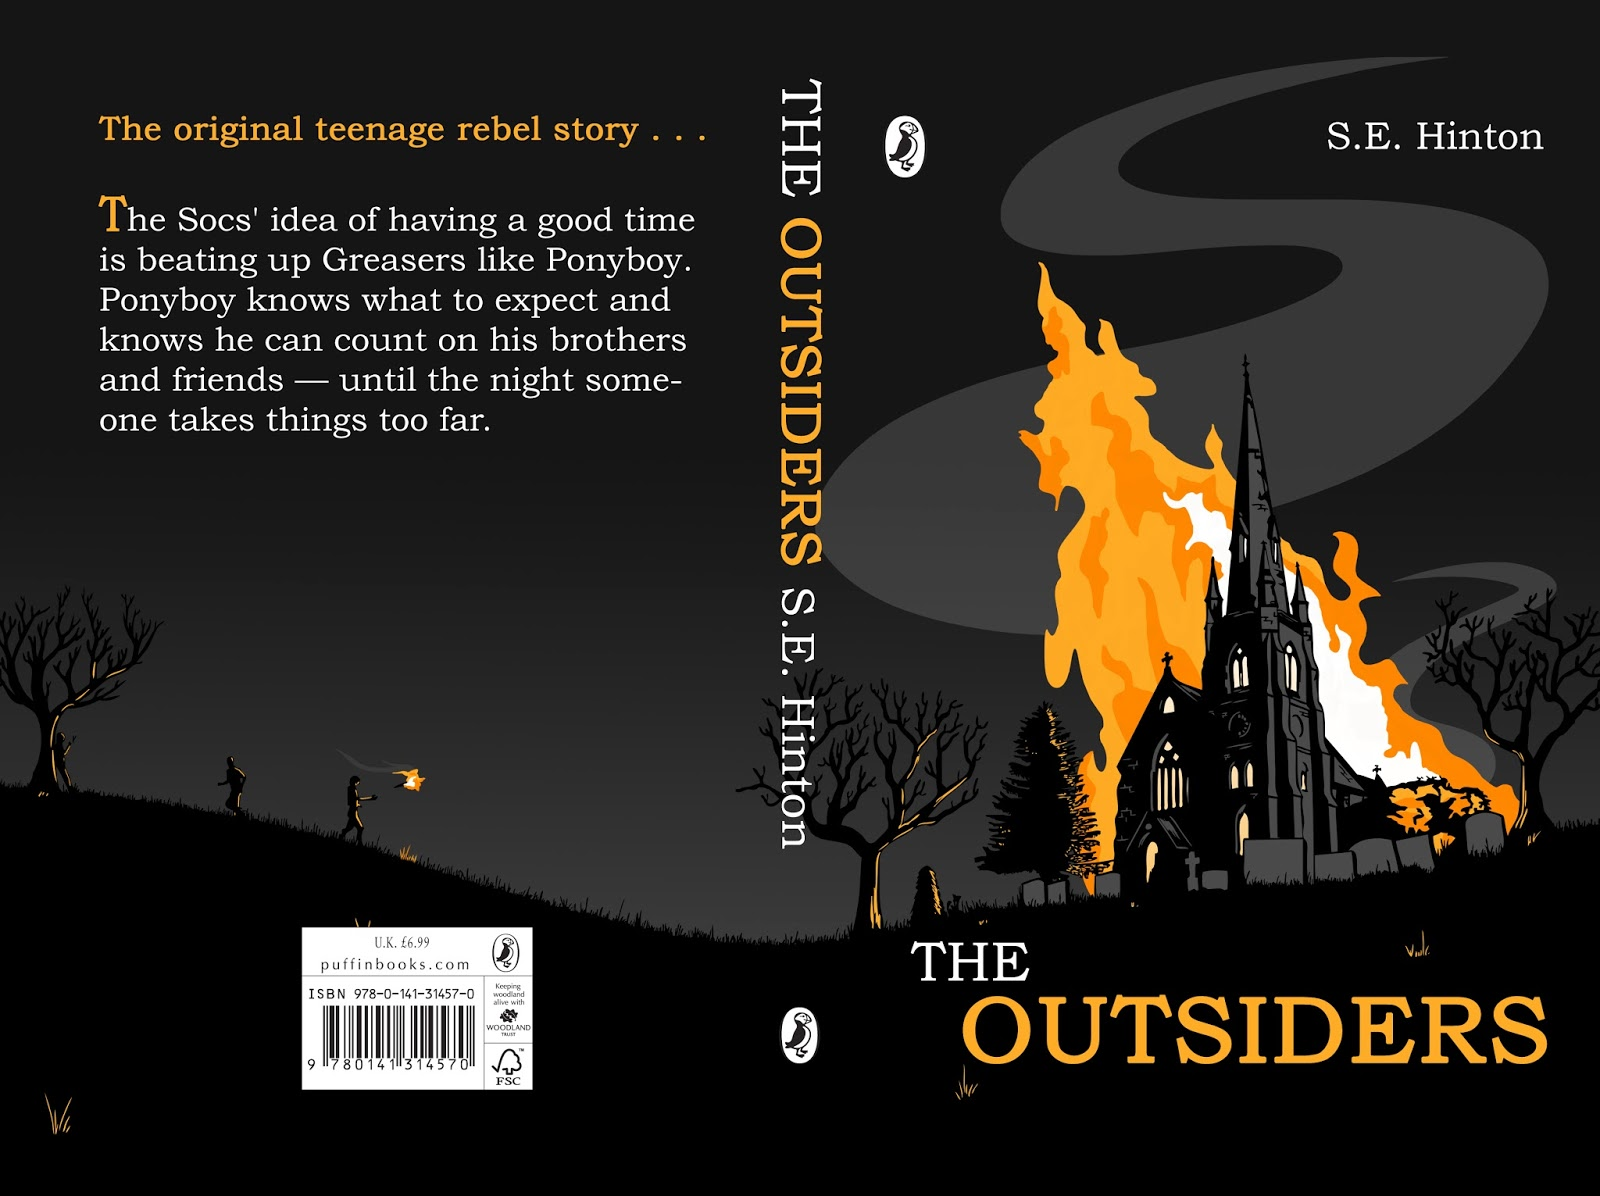 The Outsiders Book Cover Ideas : James mclarney art february